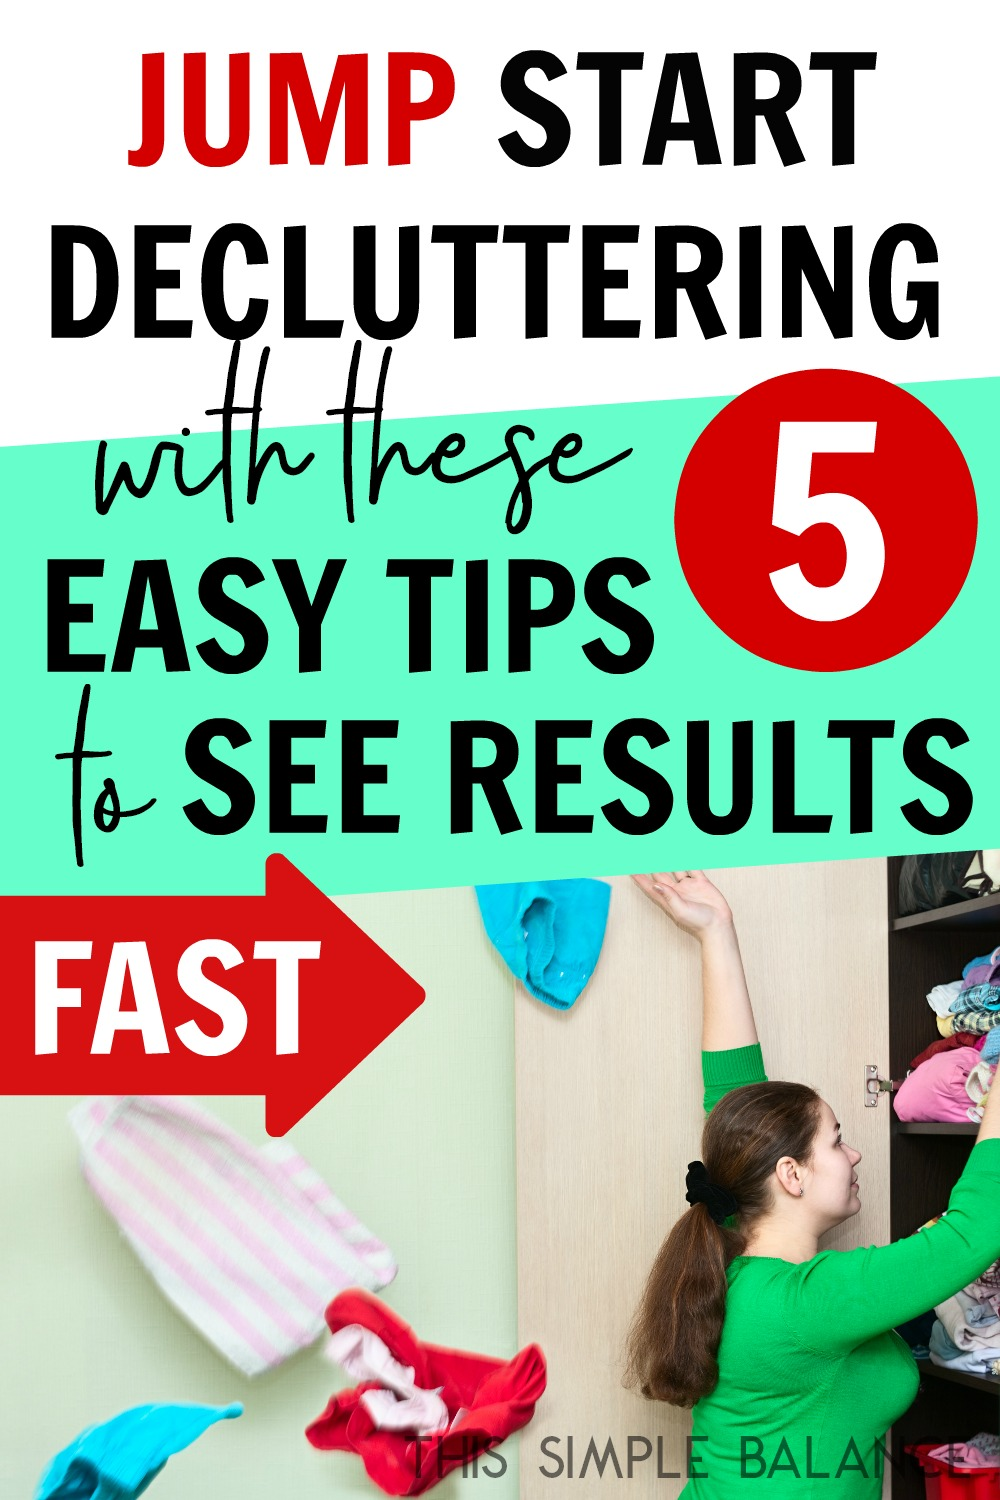 Easy Decluttering Tips to Make Getting Started Decluttering Fast and Easy!